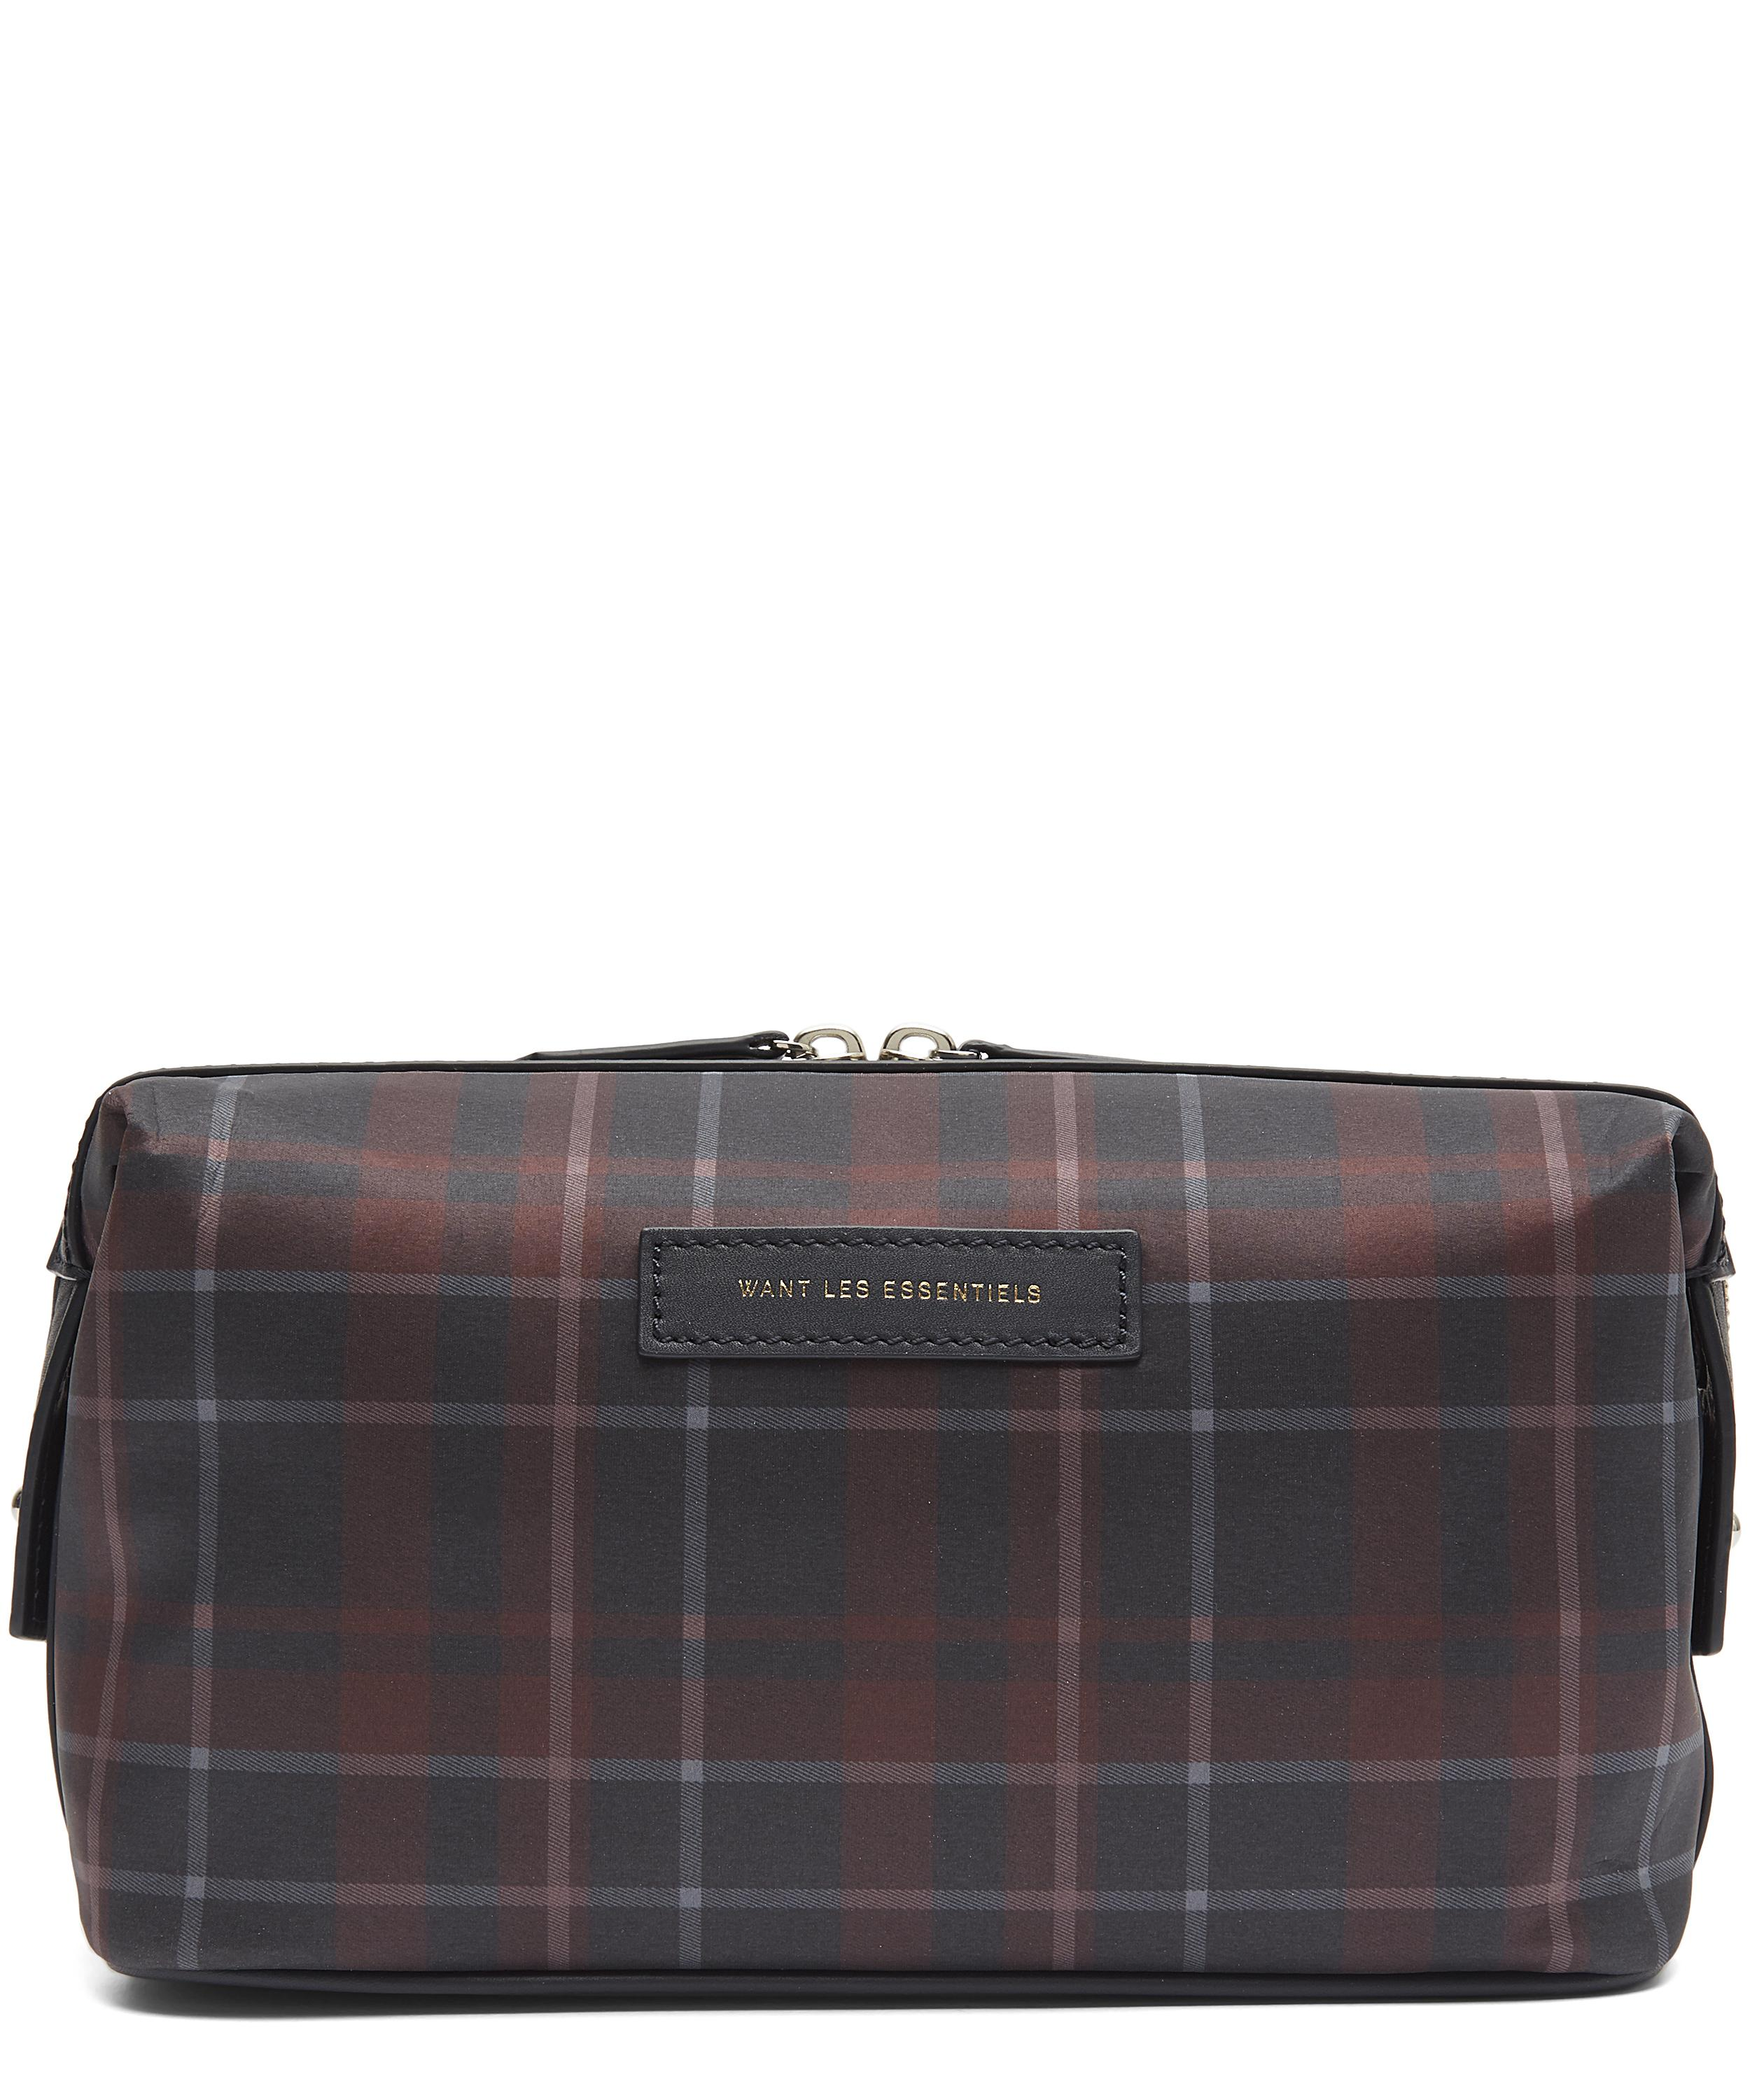 a5cca226edc Tartan Dopp Kit Wash Bag   Liberty London